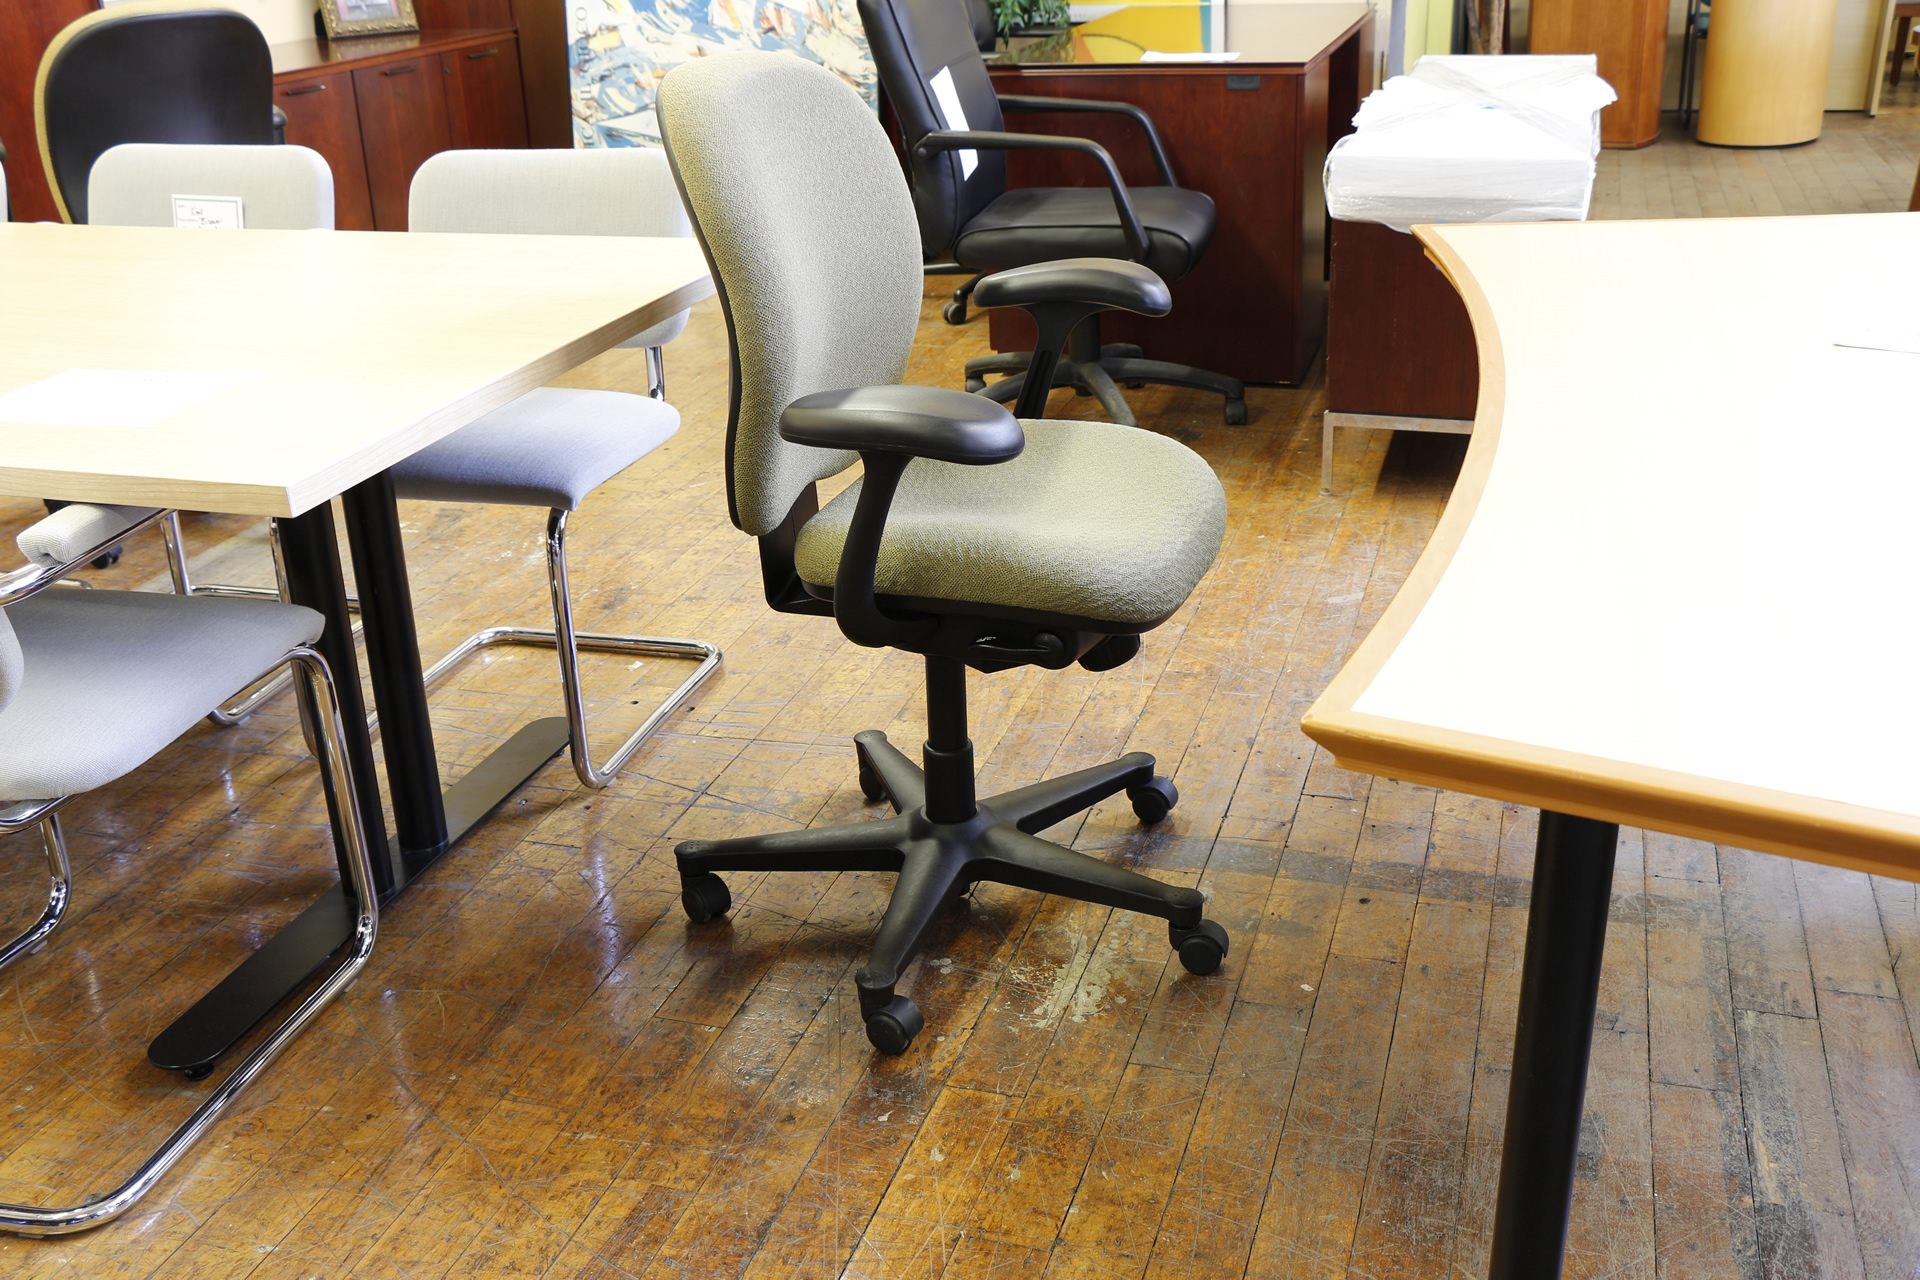 peartreeofficefurniture_peartreeofficefurniture_mg_4113.jpg